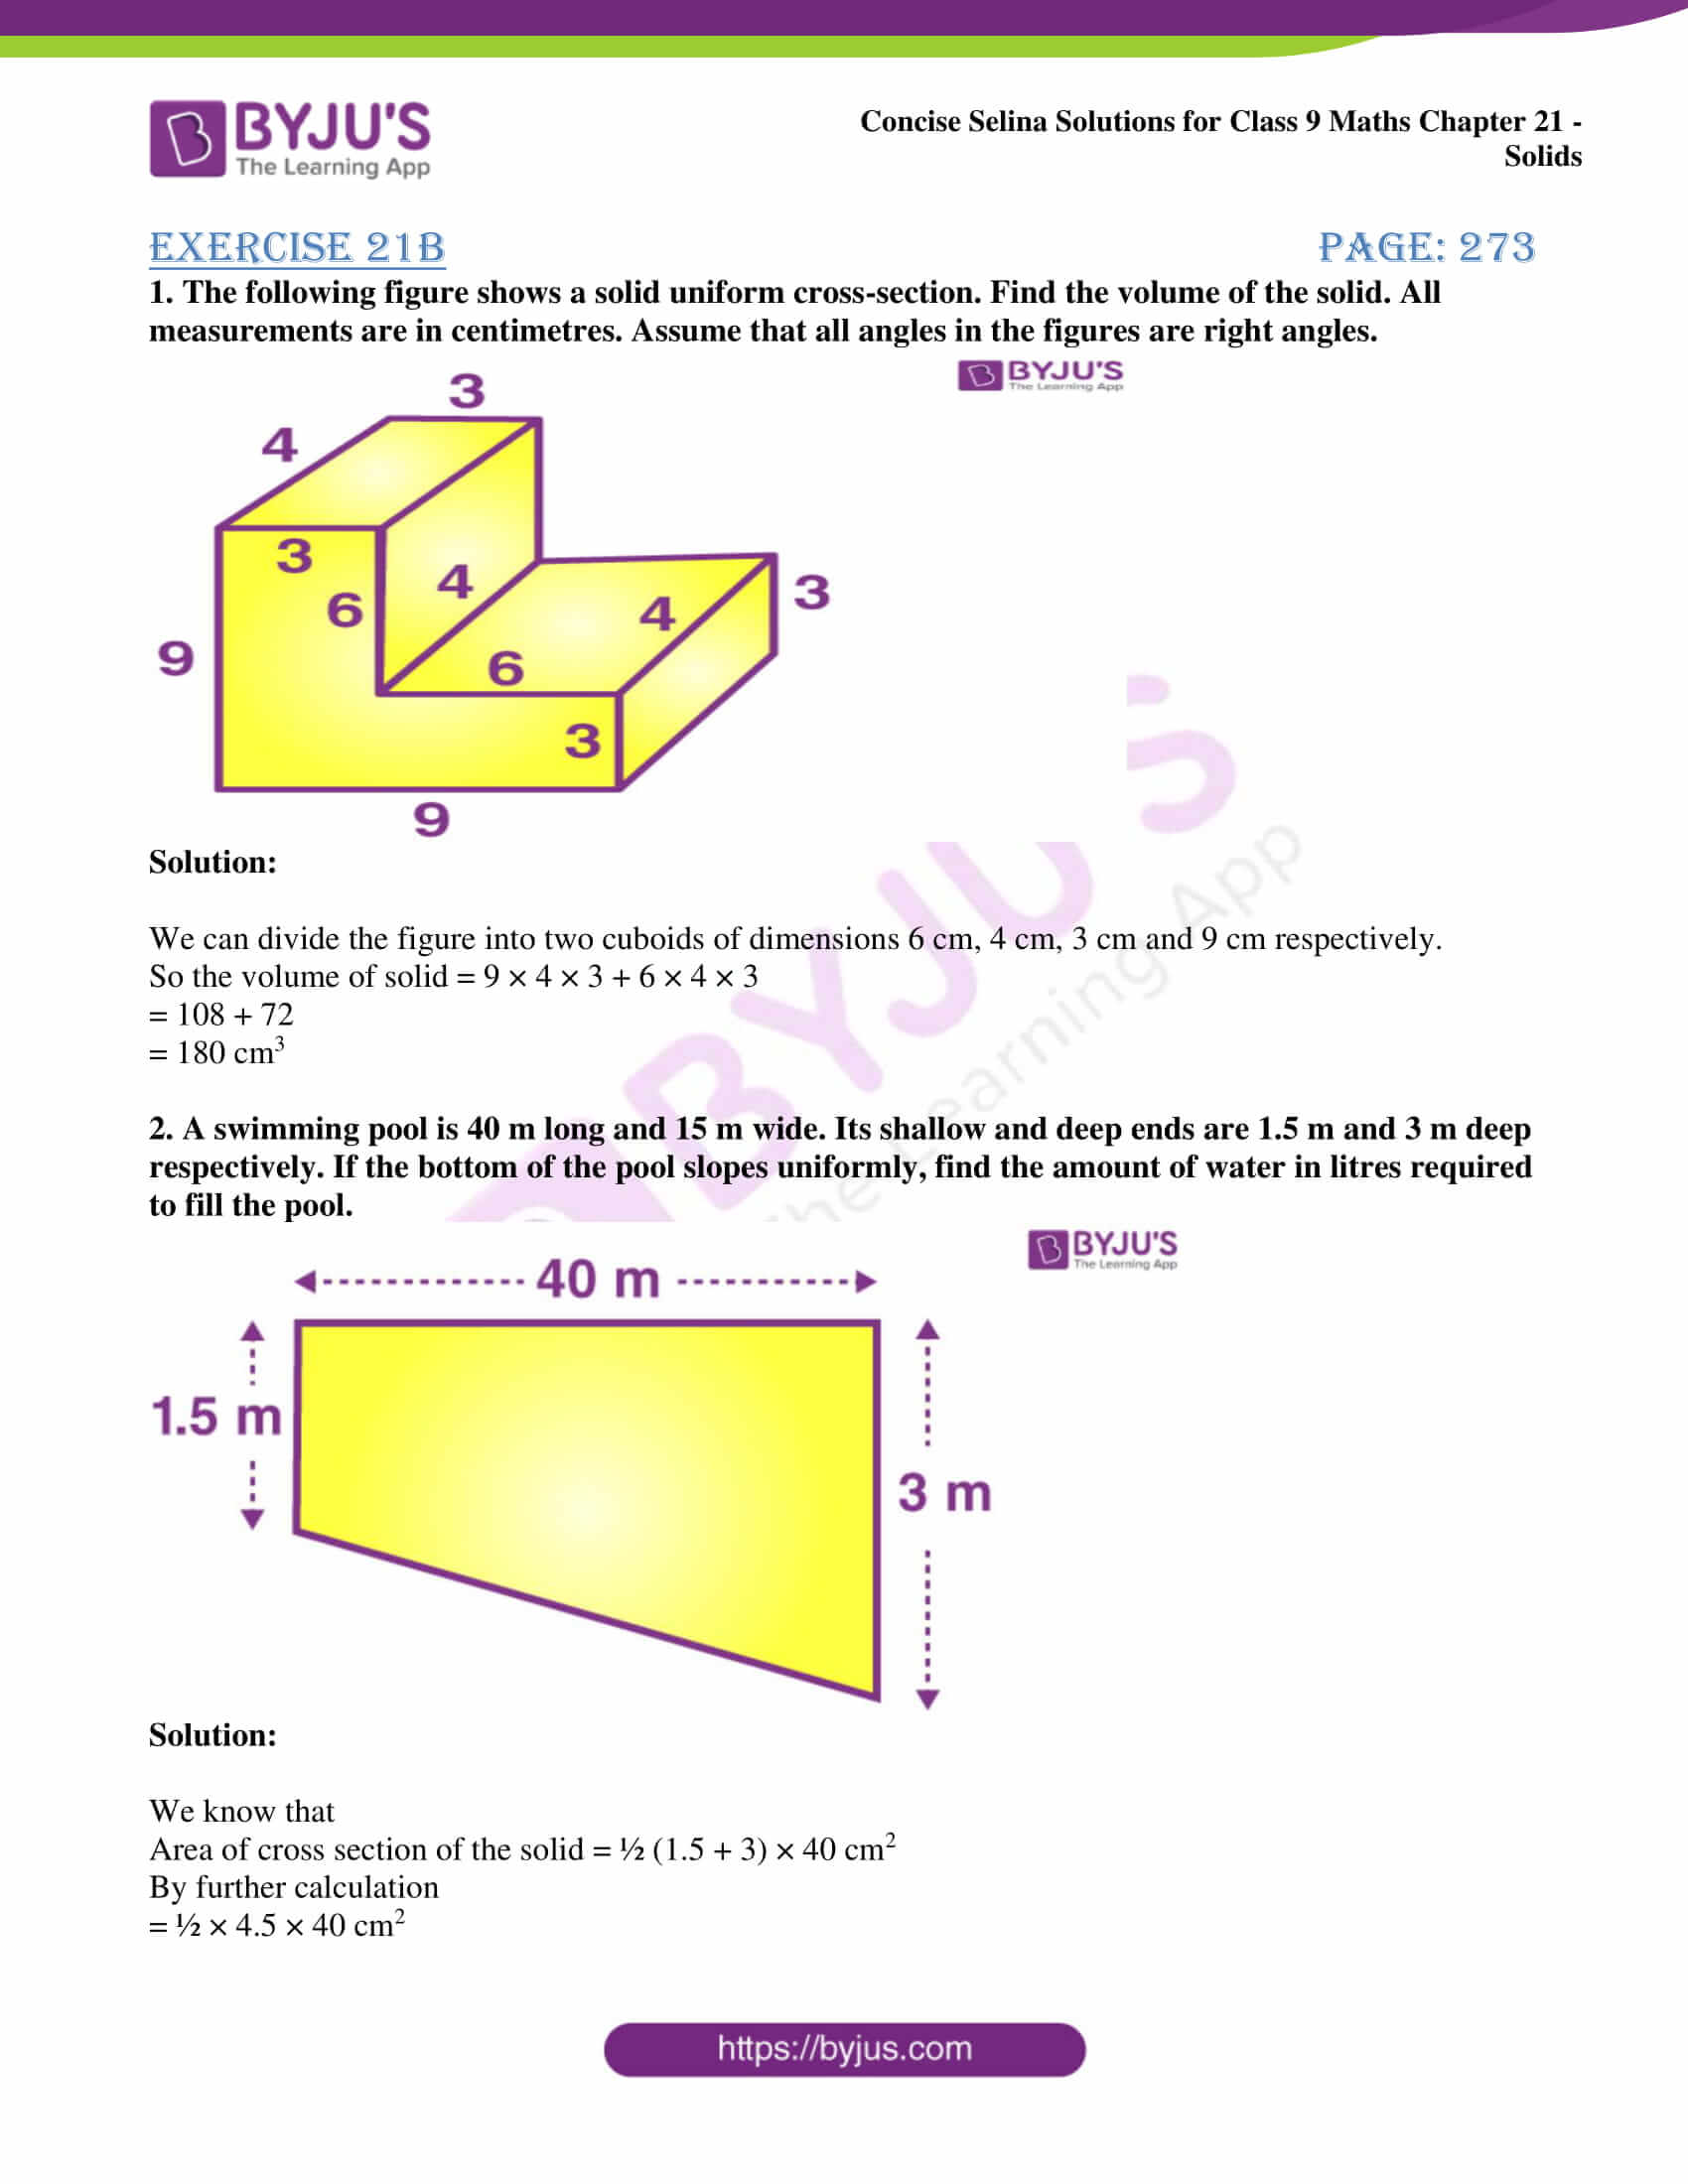 icse class 9 maths may10 selina solutions chapter 21 solids 05